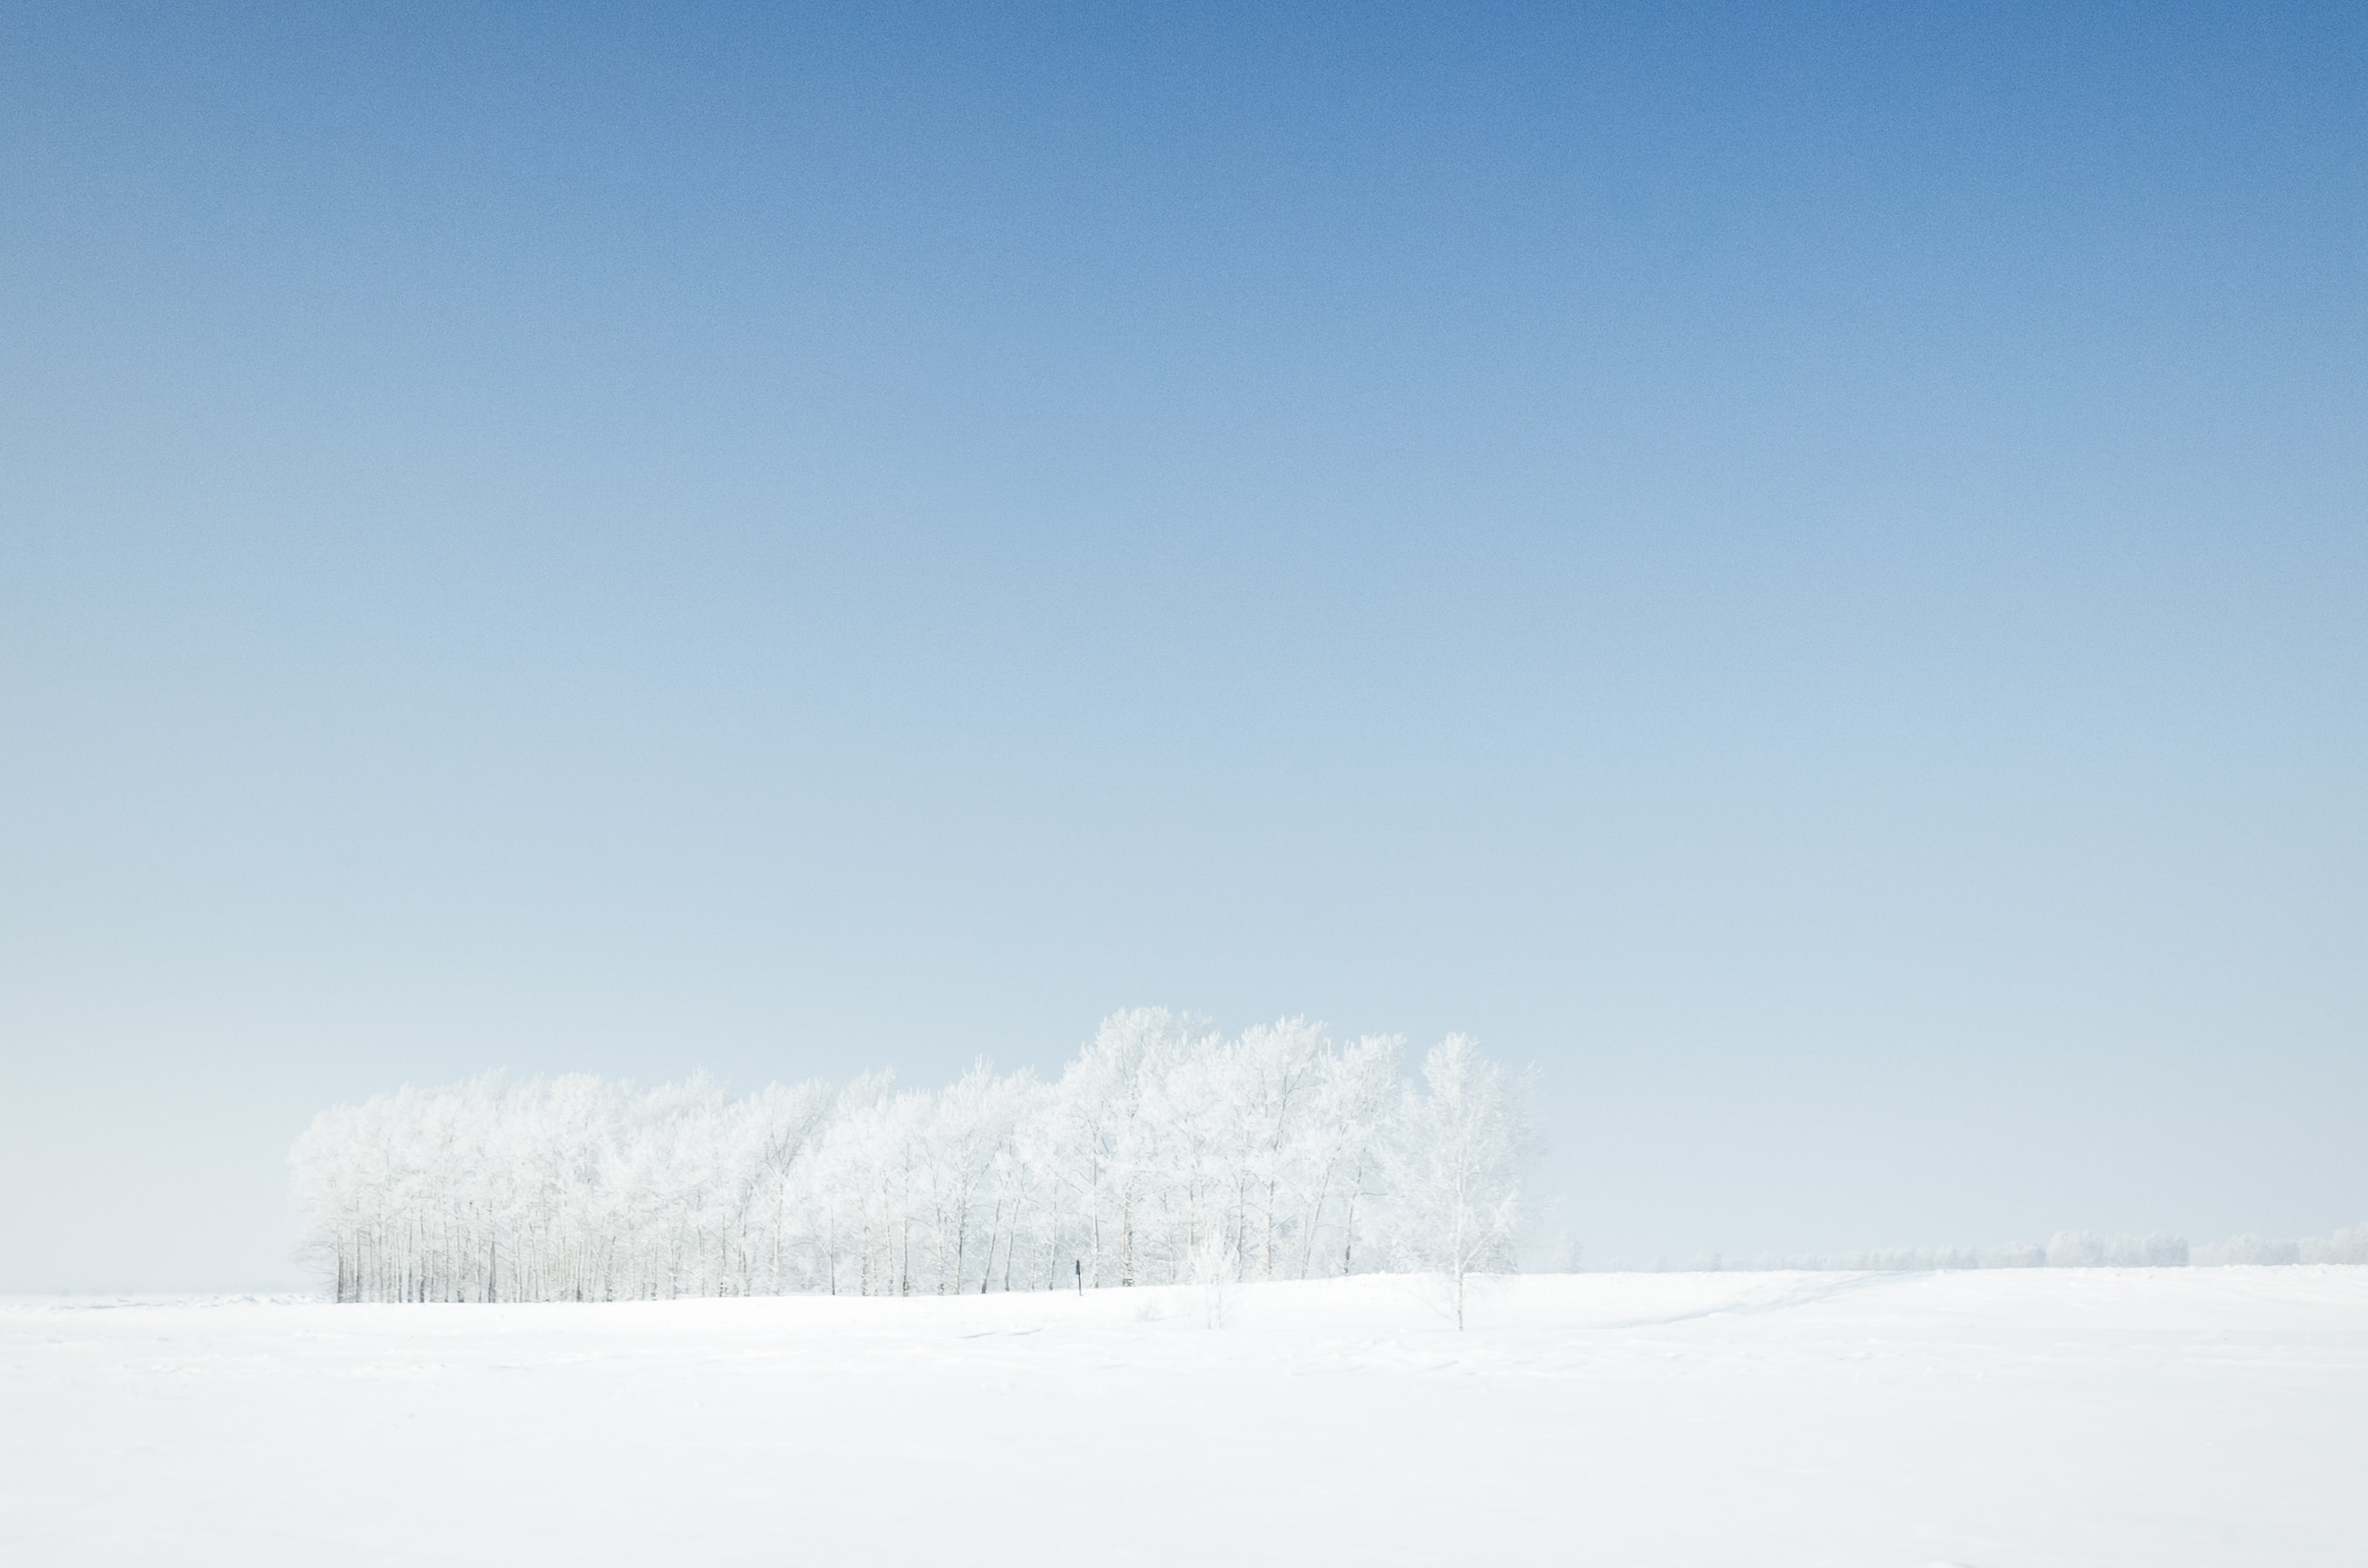 snow-coated field under clear blue sky during daytime